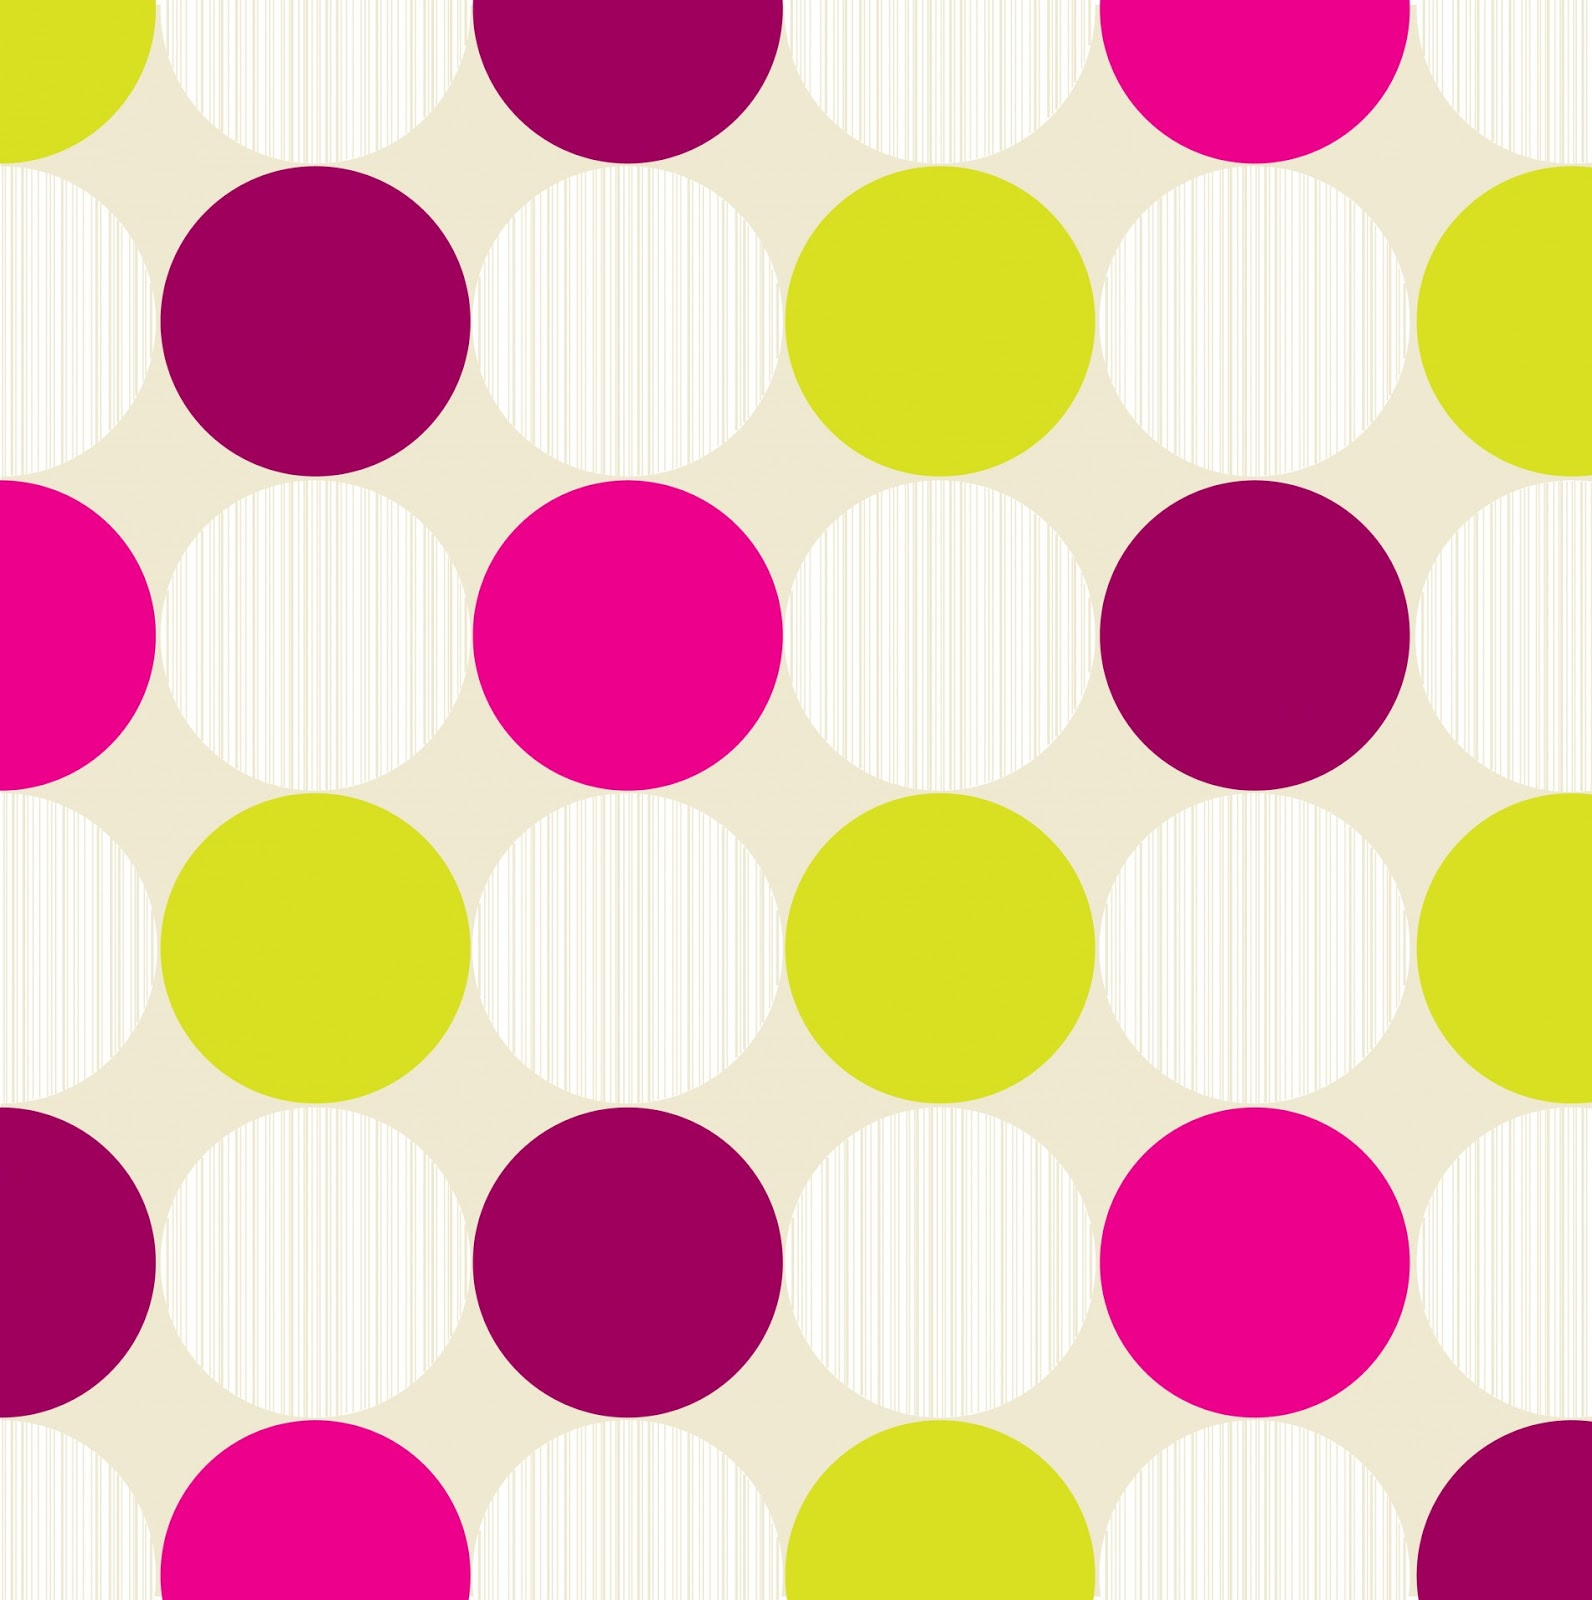 polka dots wallpaper - photo #31